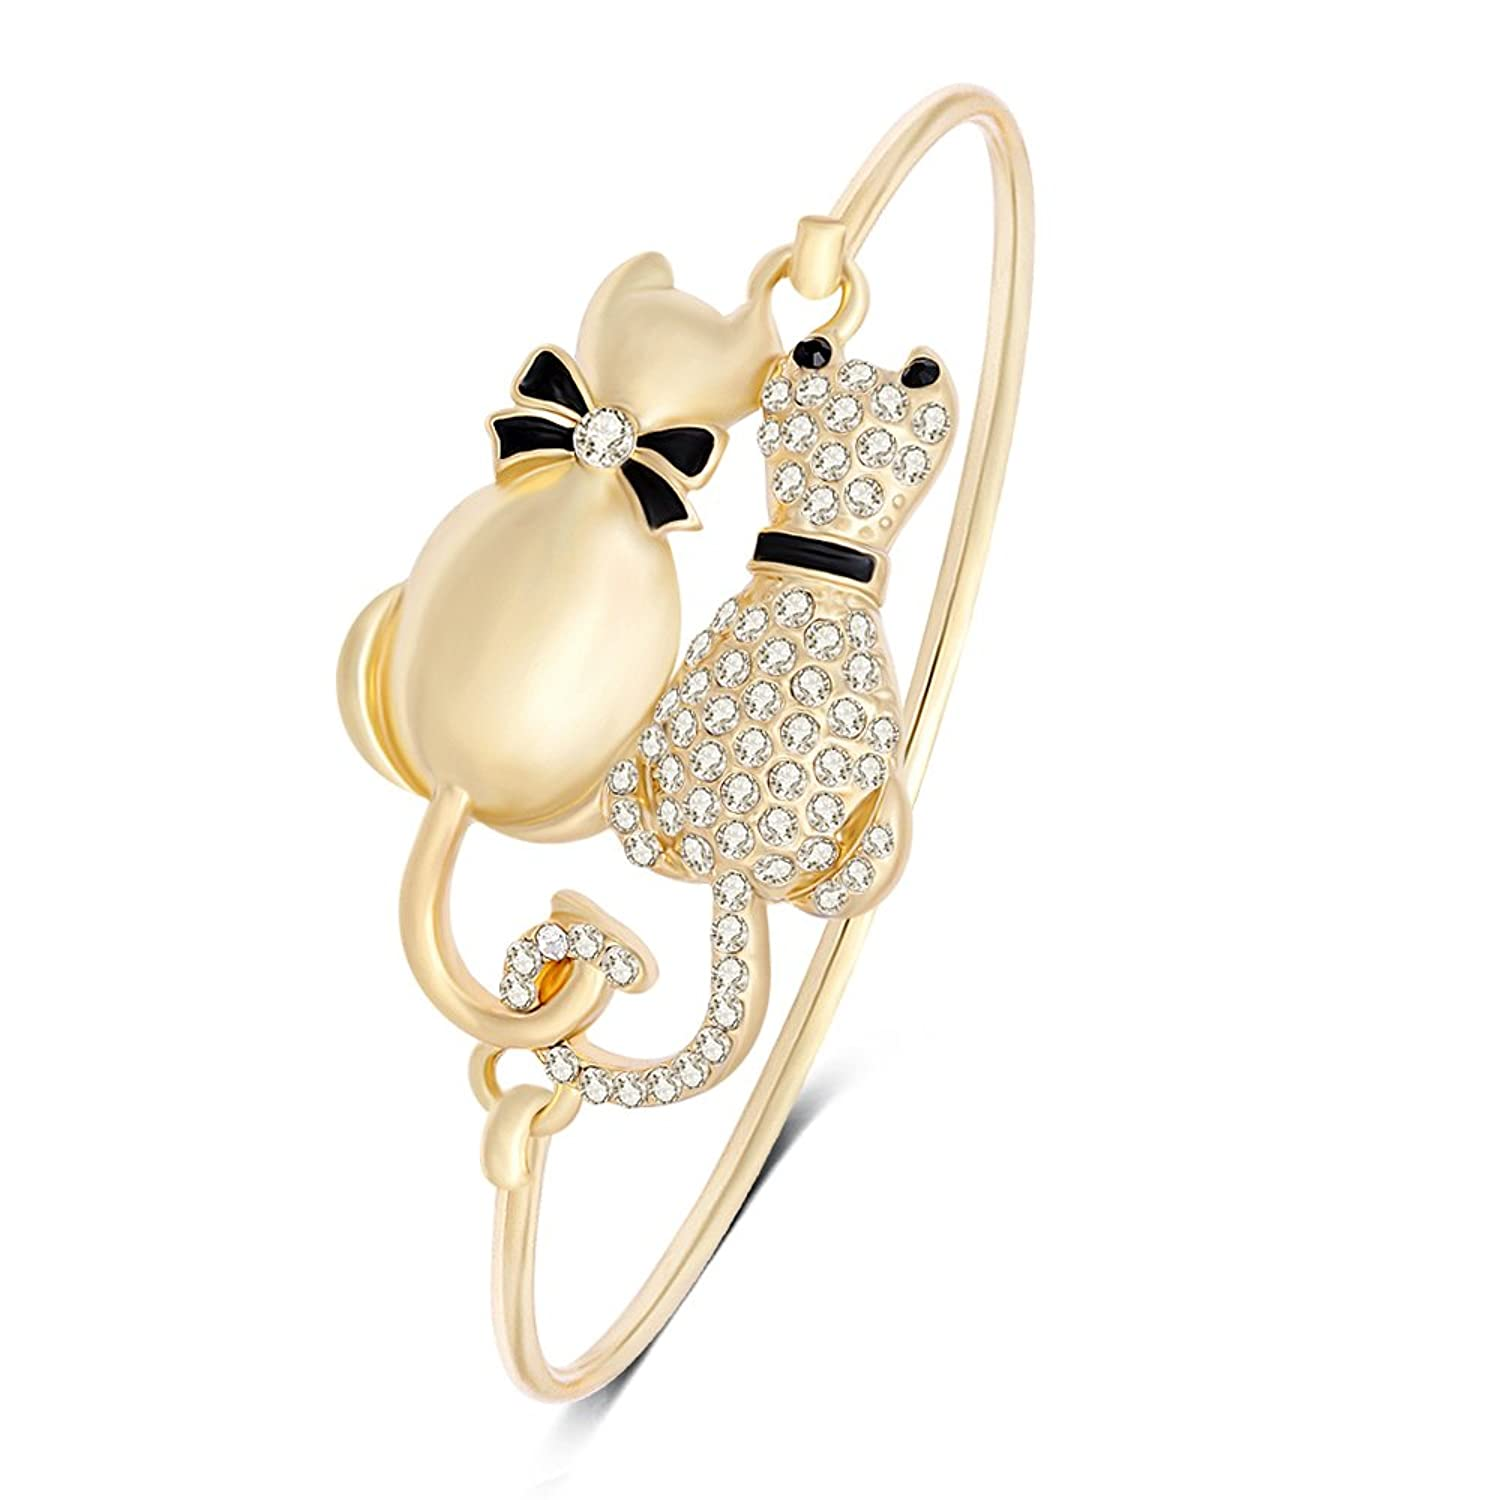 bangles gold diva jewellery bangle charm in girls fashion shining amazon for dp bracelet